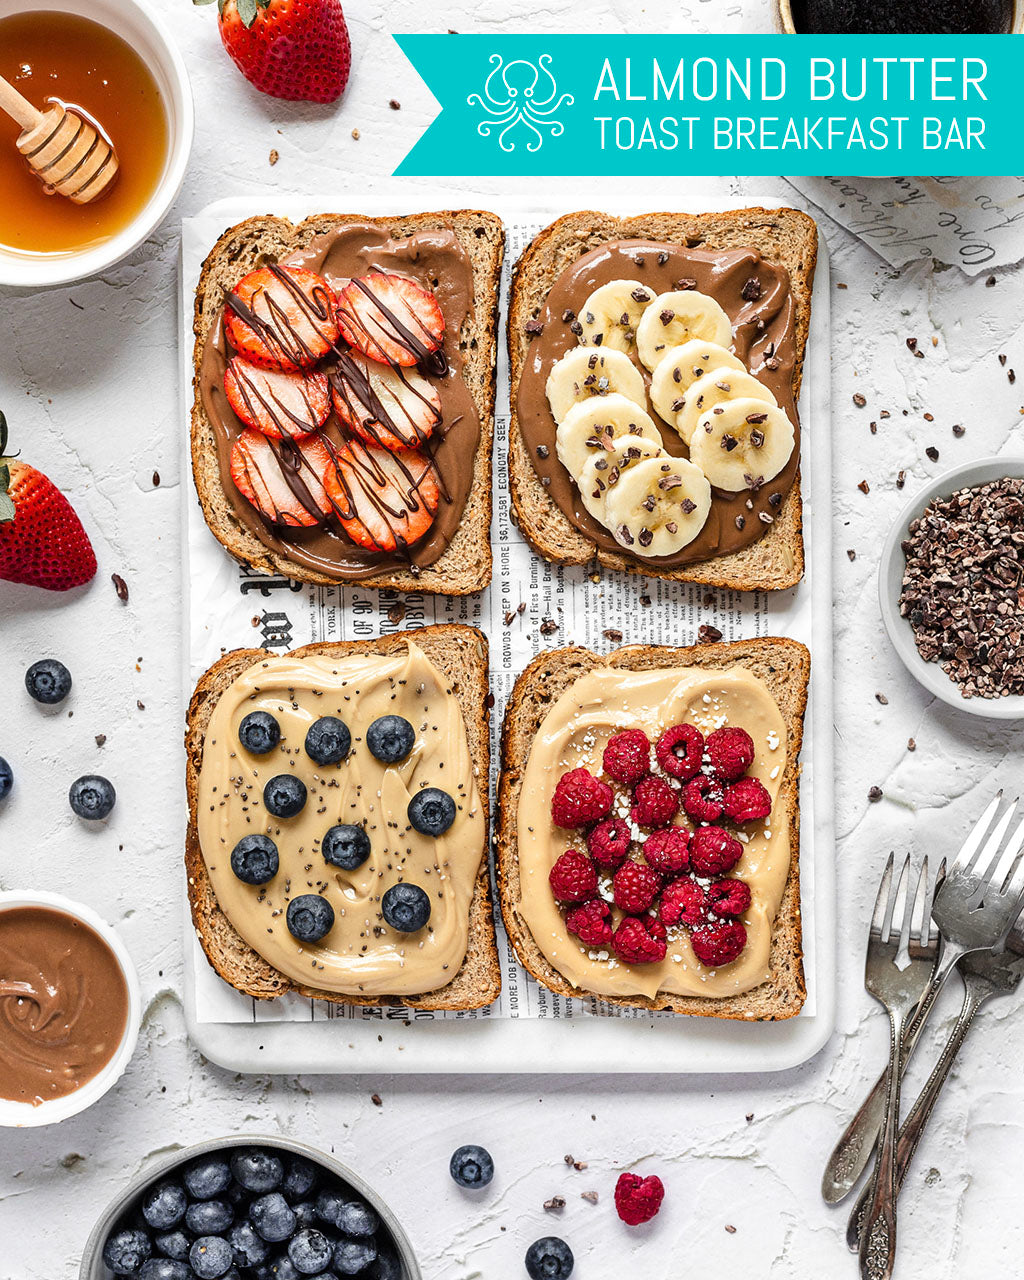 Almond Butter Toast Breakfast Bar